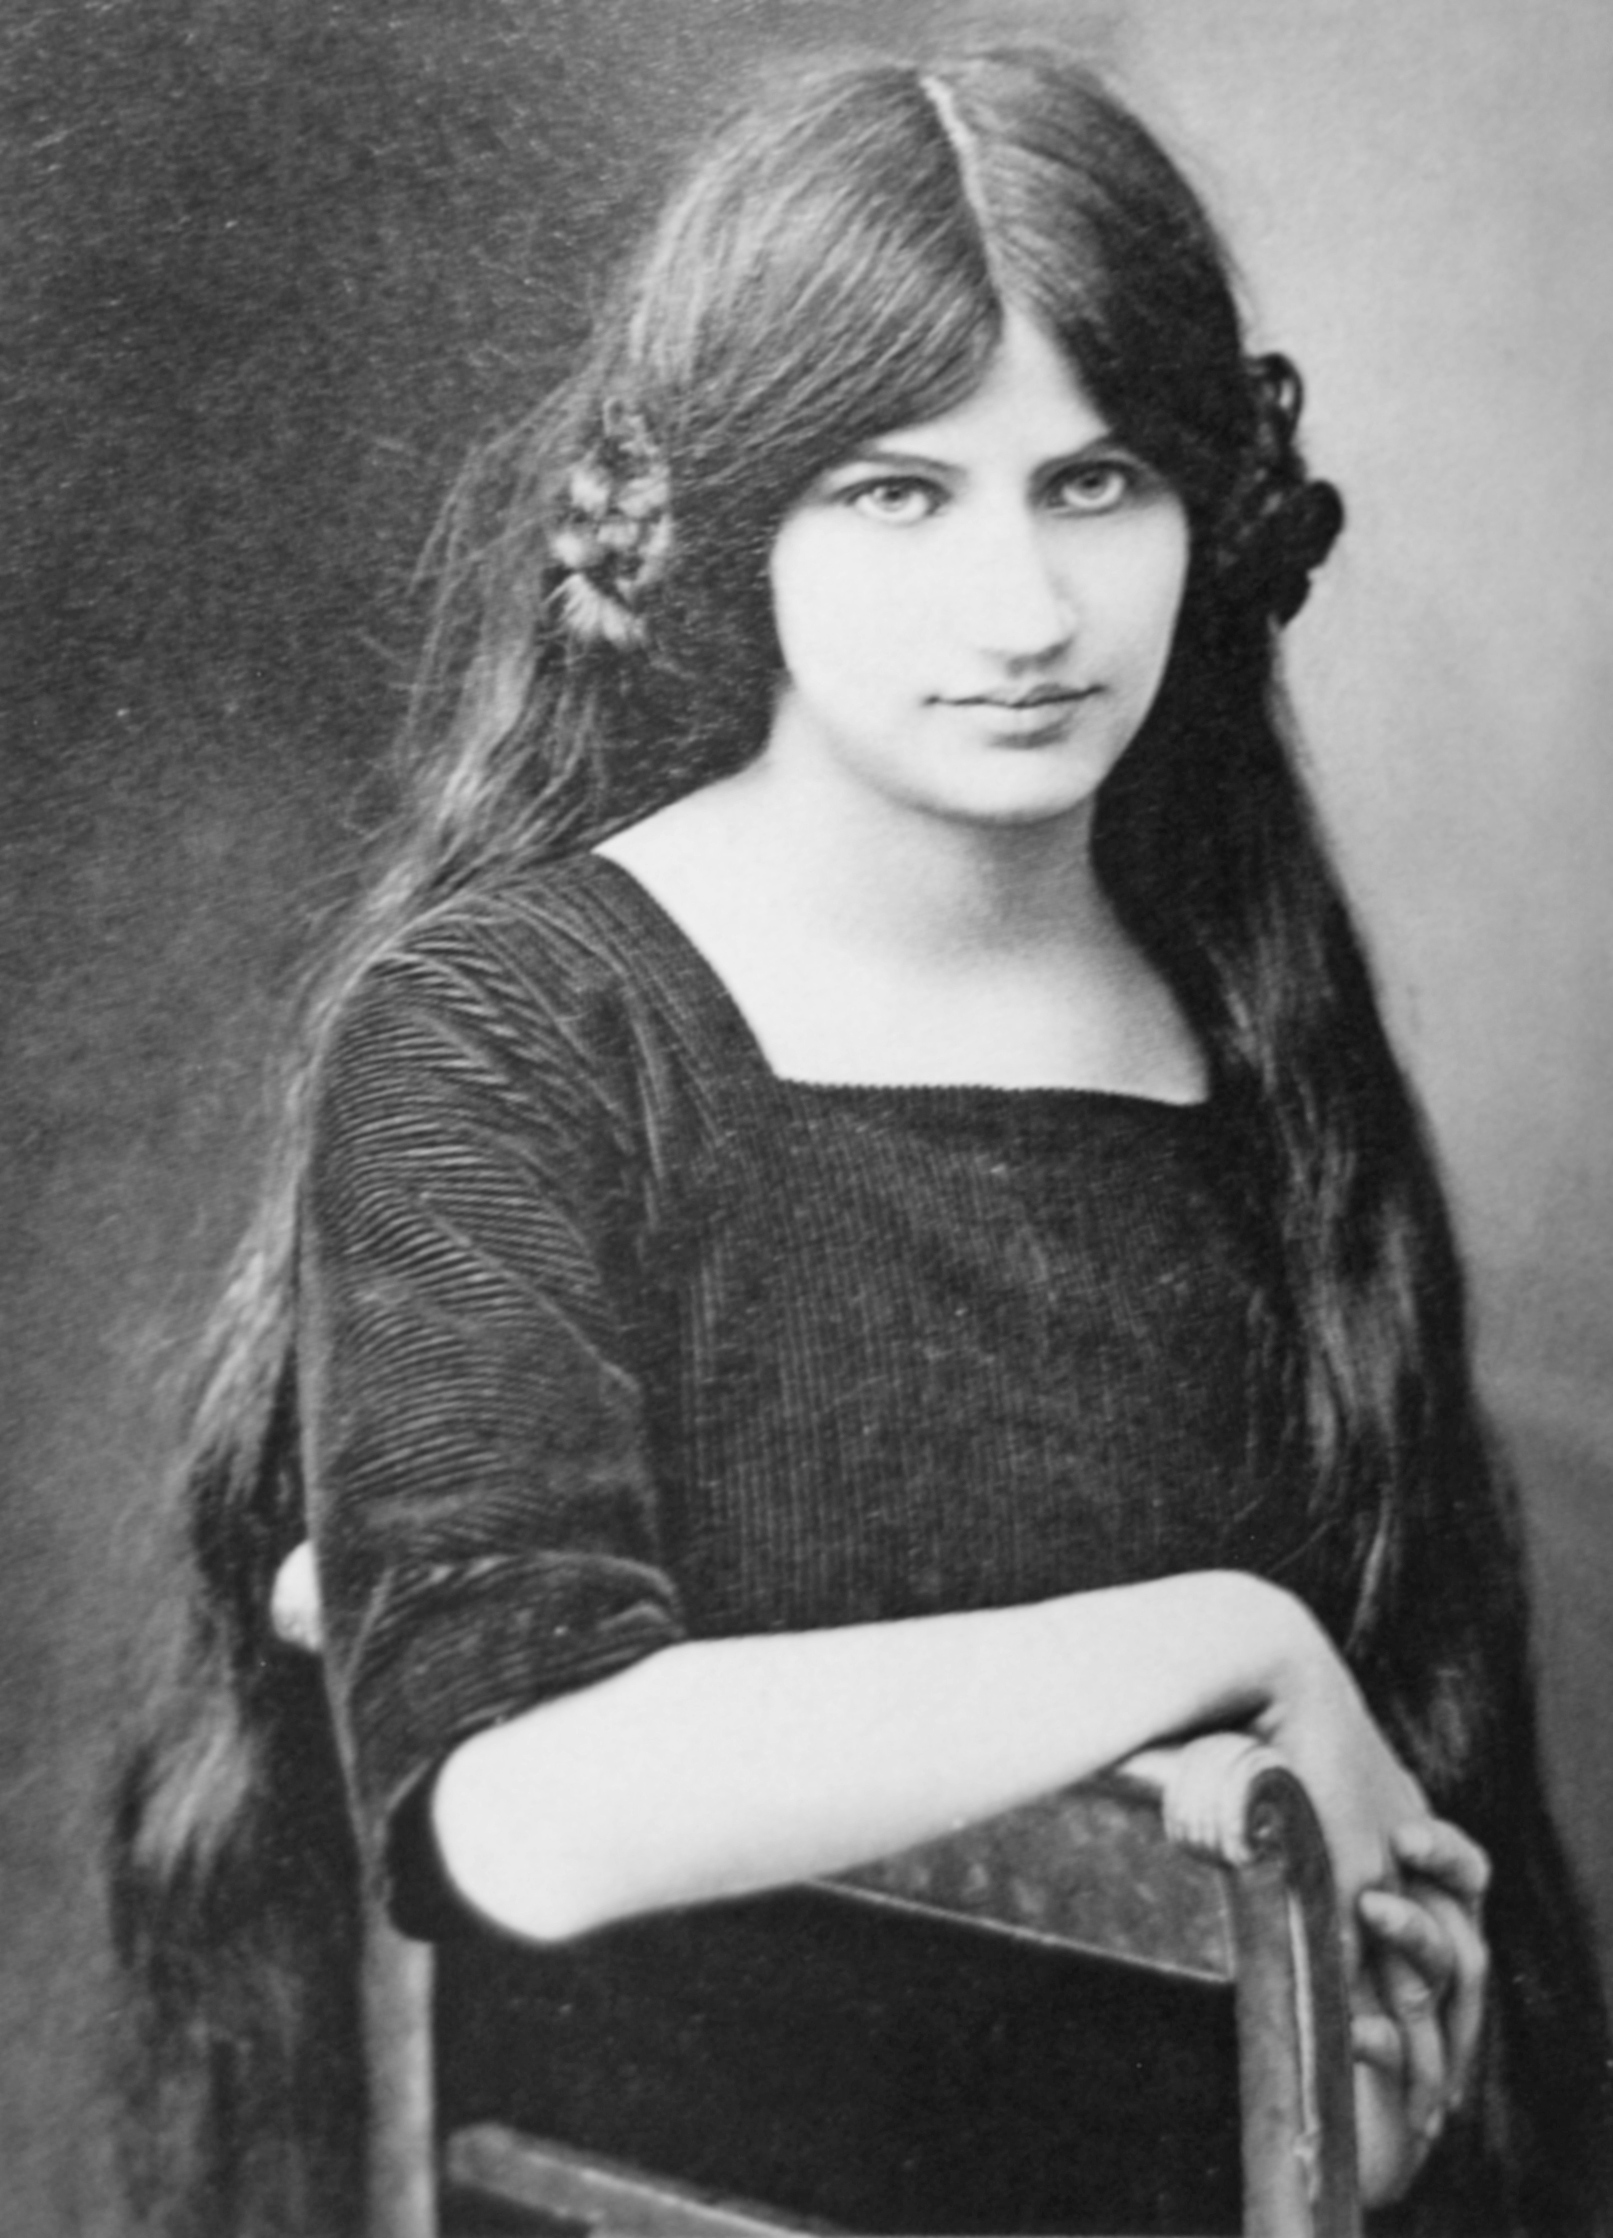 1916-jeanne-hebuterne-at-19-years-photo